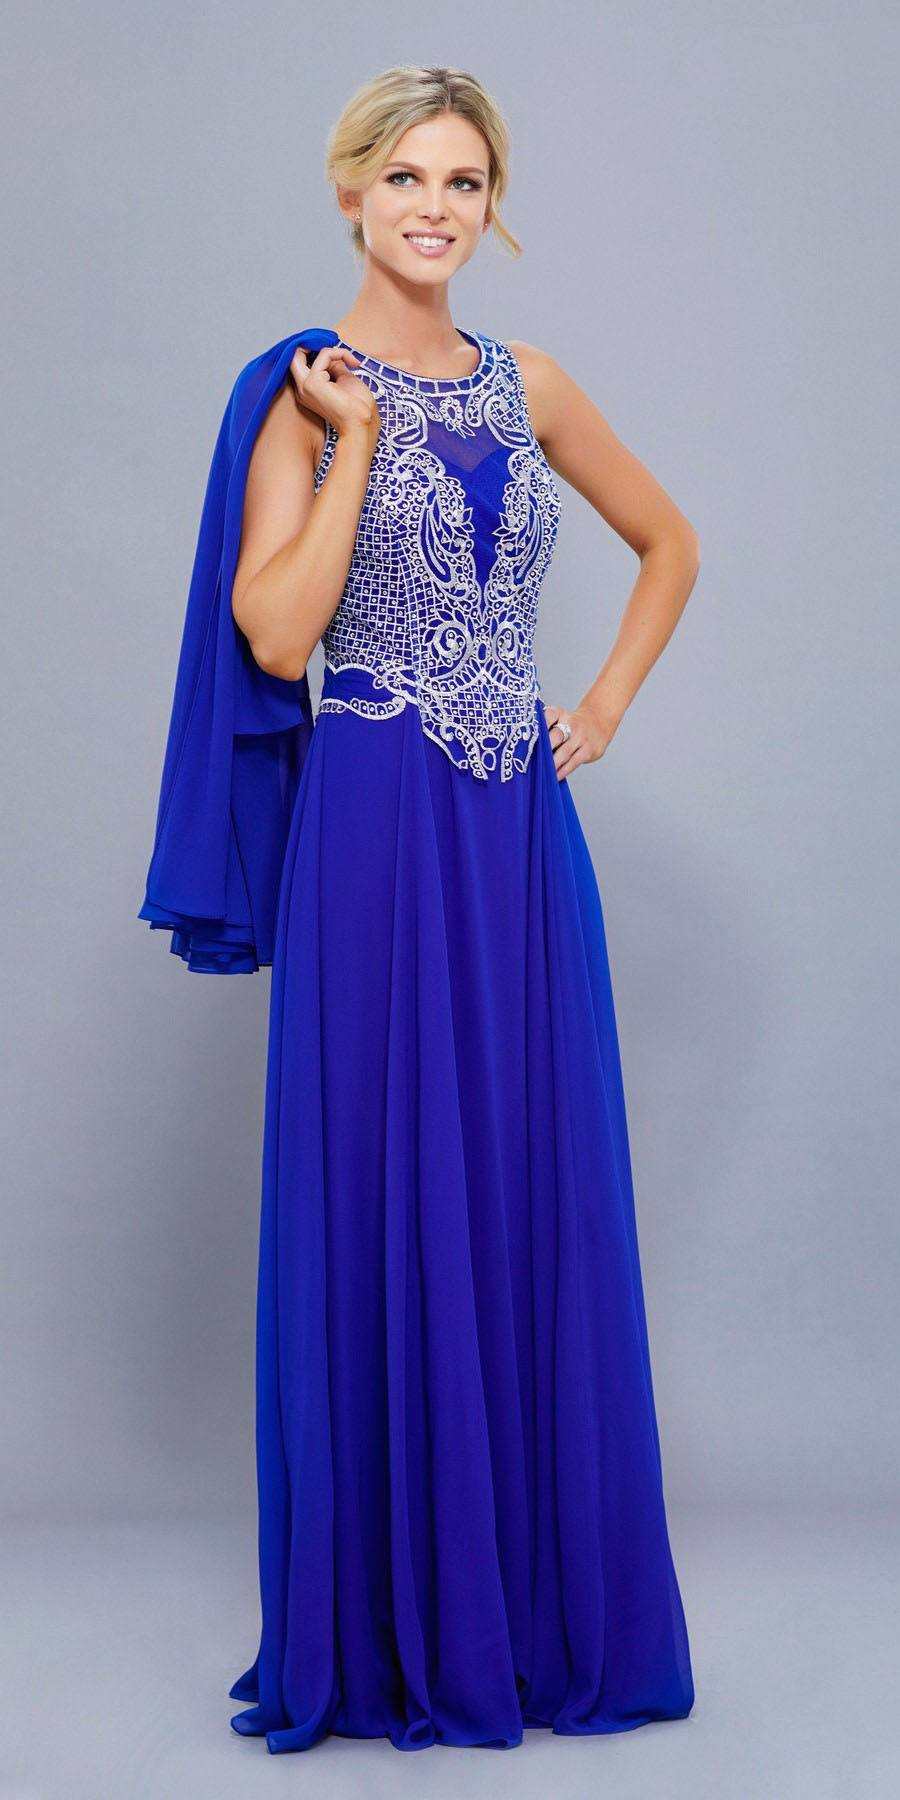 Nox Anabel 5148 Silver Embroidered Bodice Floor Length Formal Dress ...